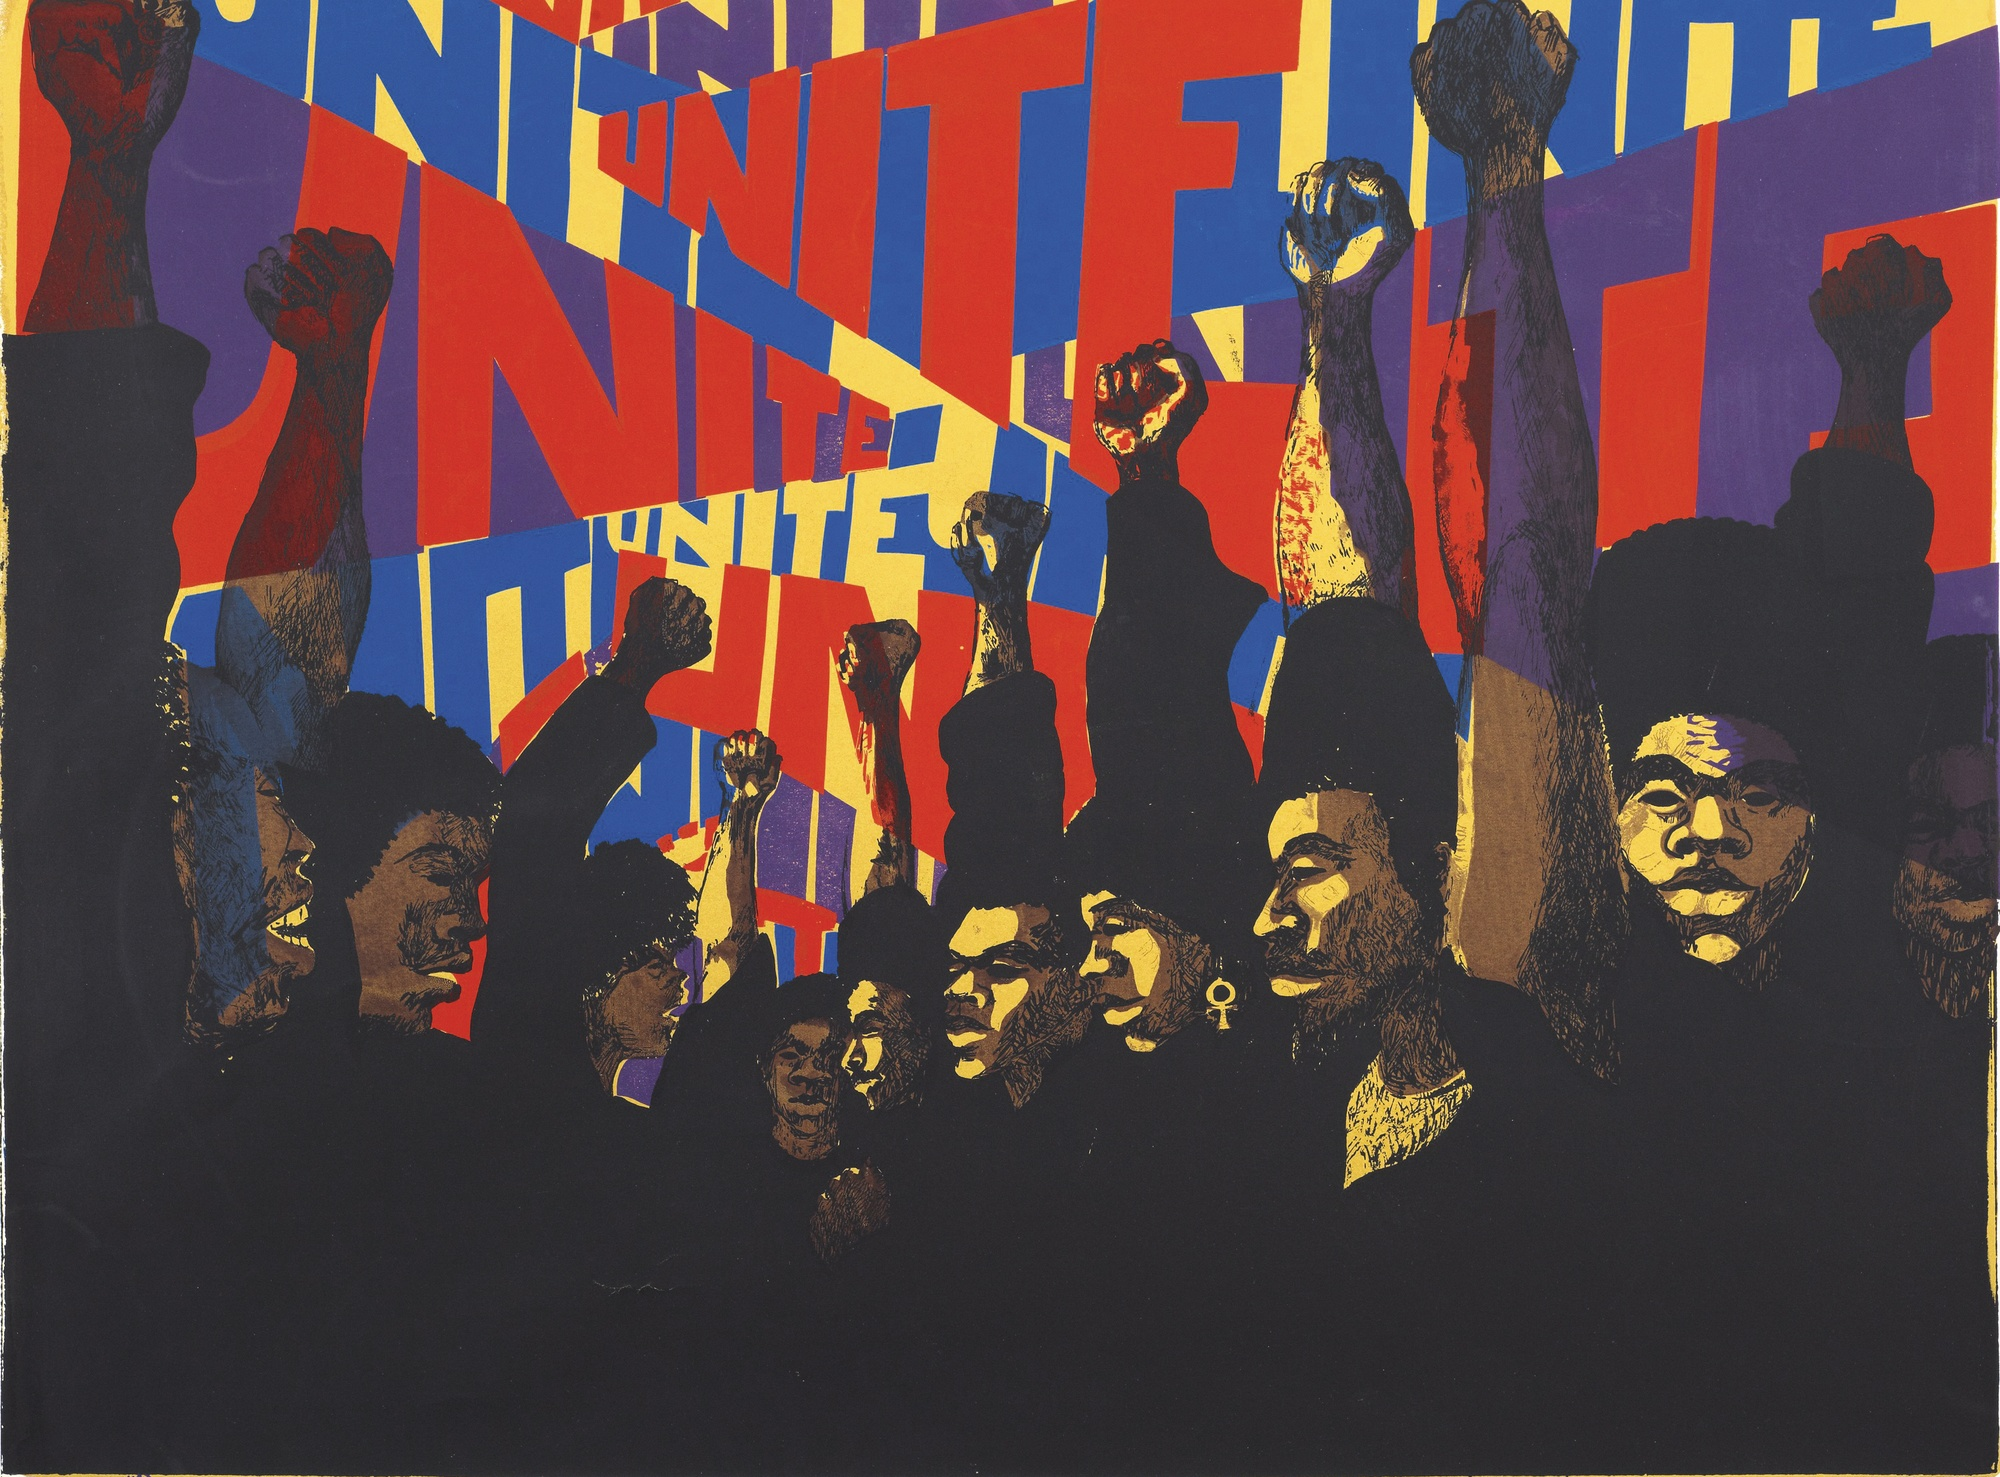 Barbara Jones-Hogu, Unite (AfriCOBRA), 1971, lithographie, The Art Institute of Chicago, États-Unis.